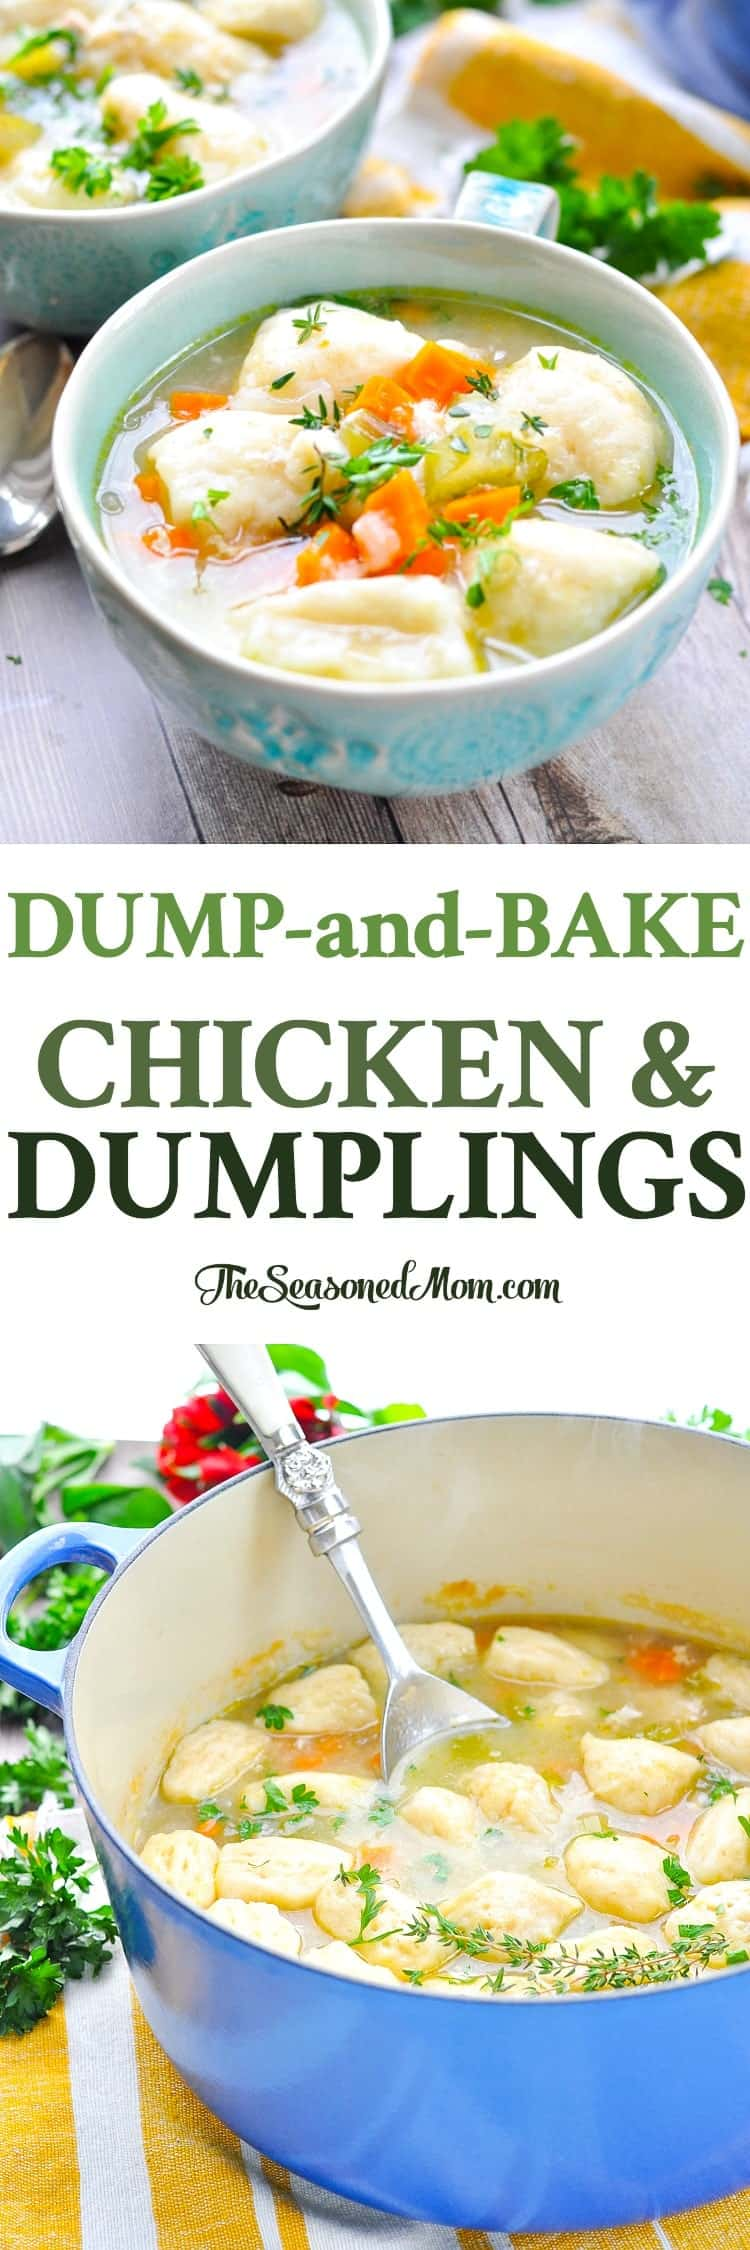 Dump and bake chicken and dumplings the seasoned mom dump and bake chicken and dumplings is a cozy one pot meal easy forumfinder Gallery